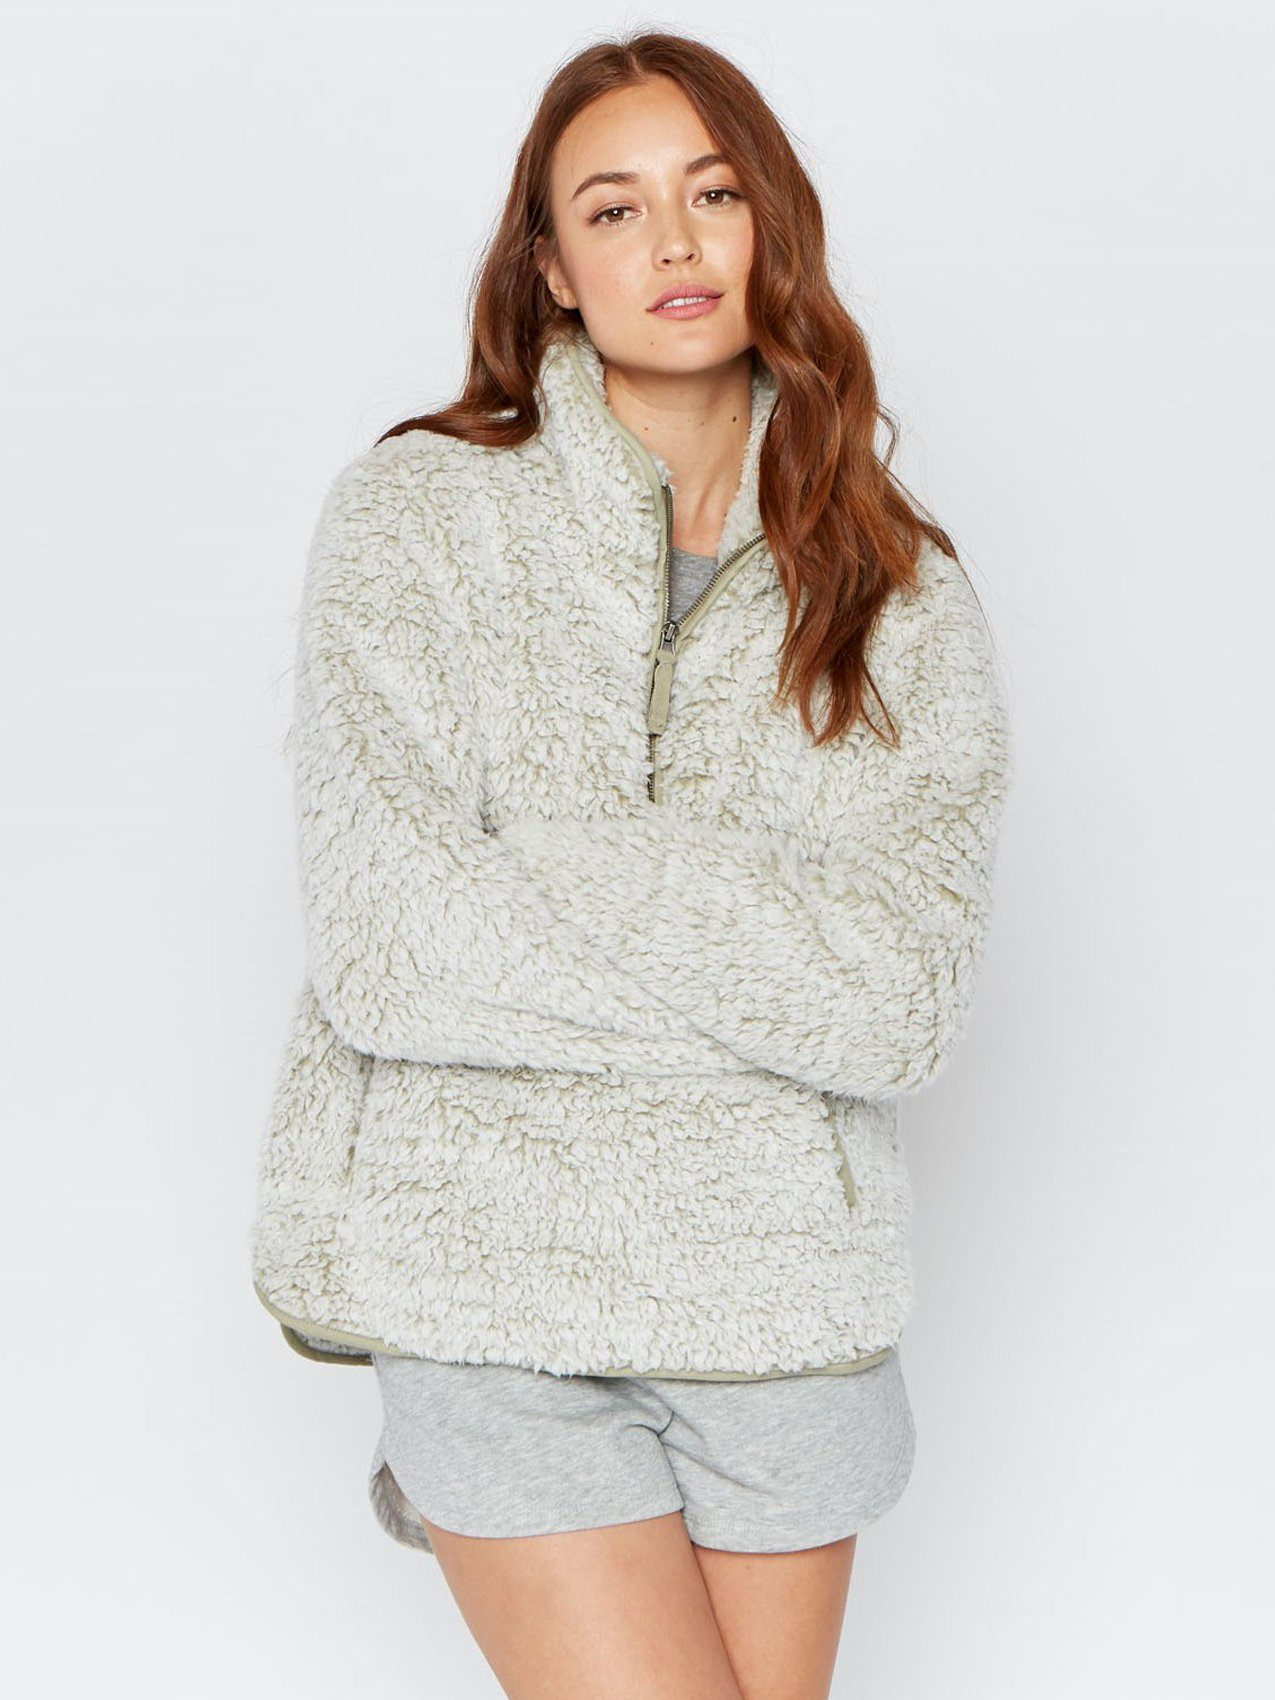 Seven Wonders Pullover Thread & Supply Ivory Leopard S